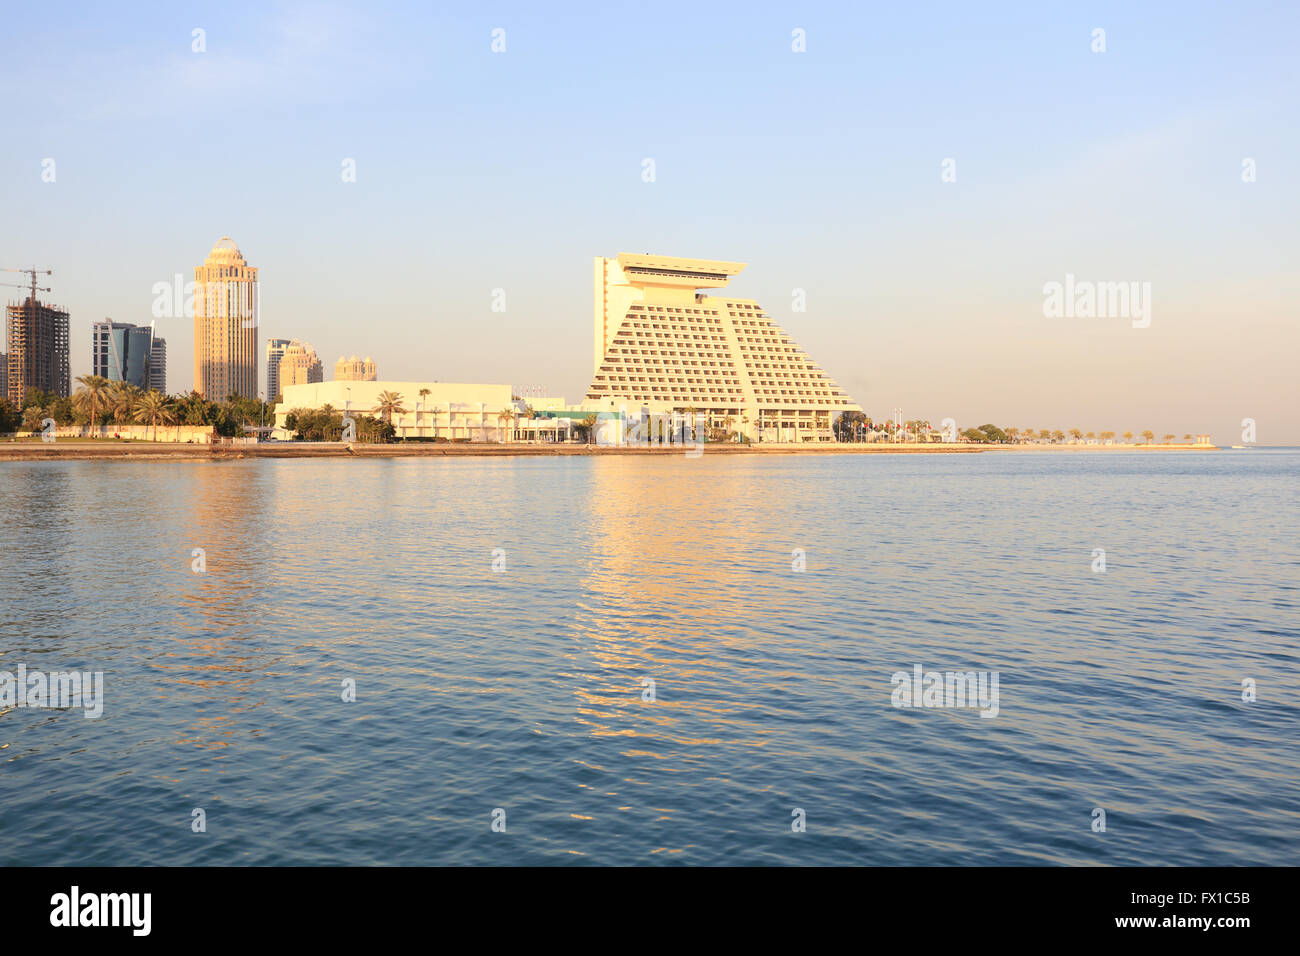 The doha sheraton right and other top class hotel buildings in doha qatar shortly before sunset january 2016